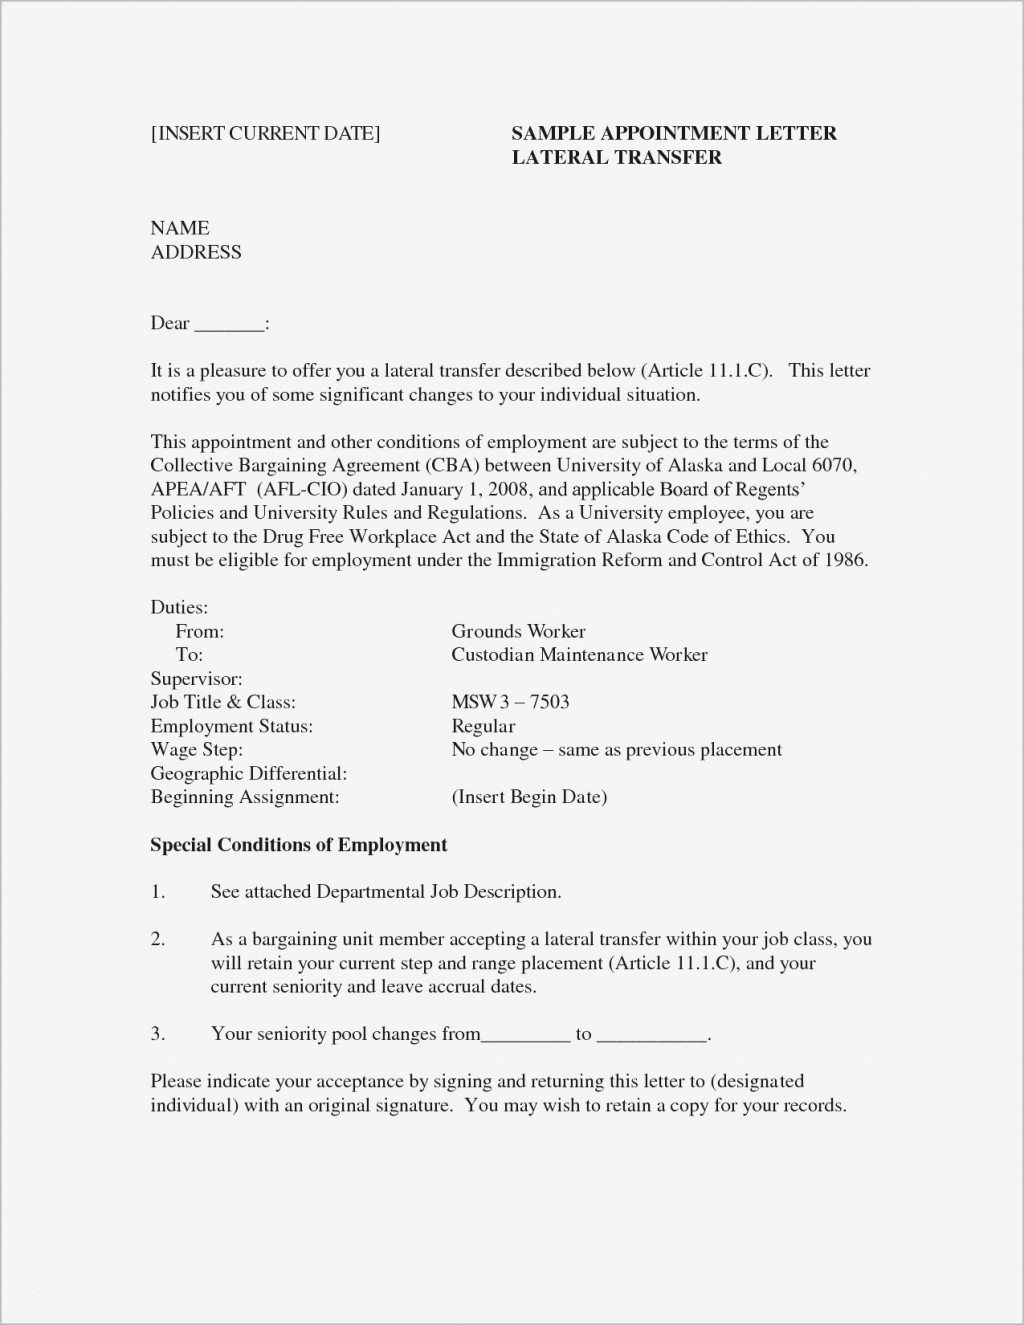 015 Resume For No Previous Work Experience Awesome Education Job Sample Of Research Paper How To Write Online Course On Writing A Class Large